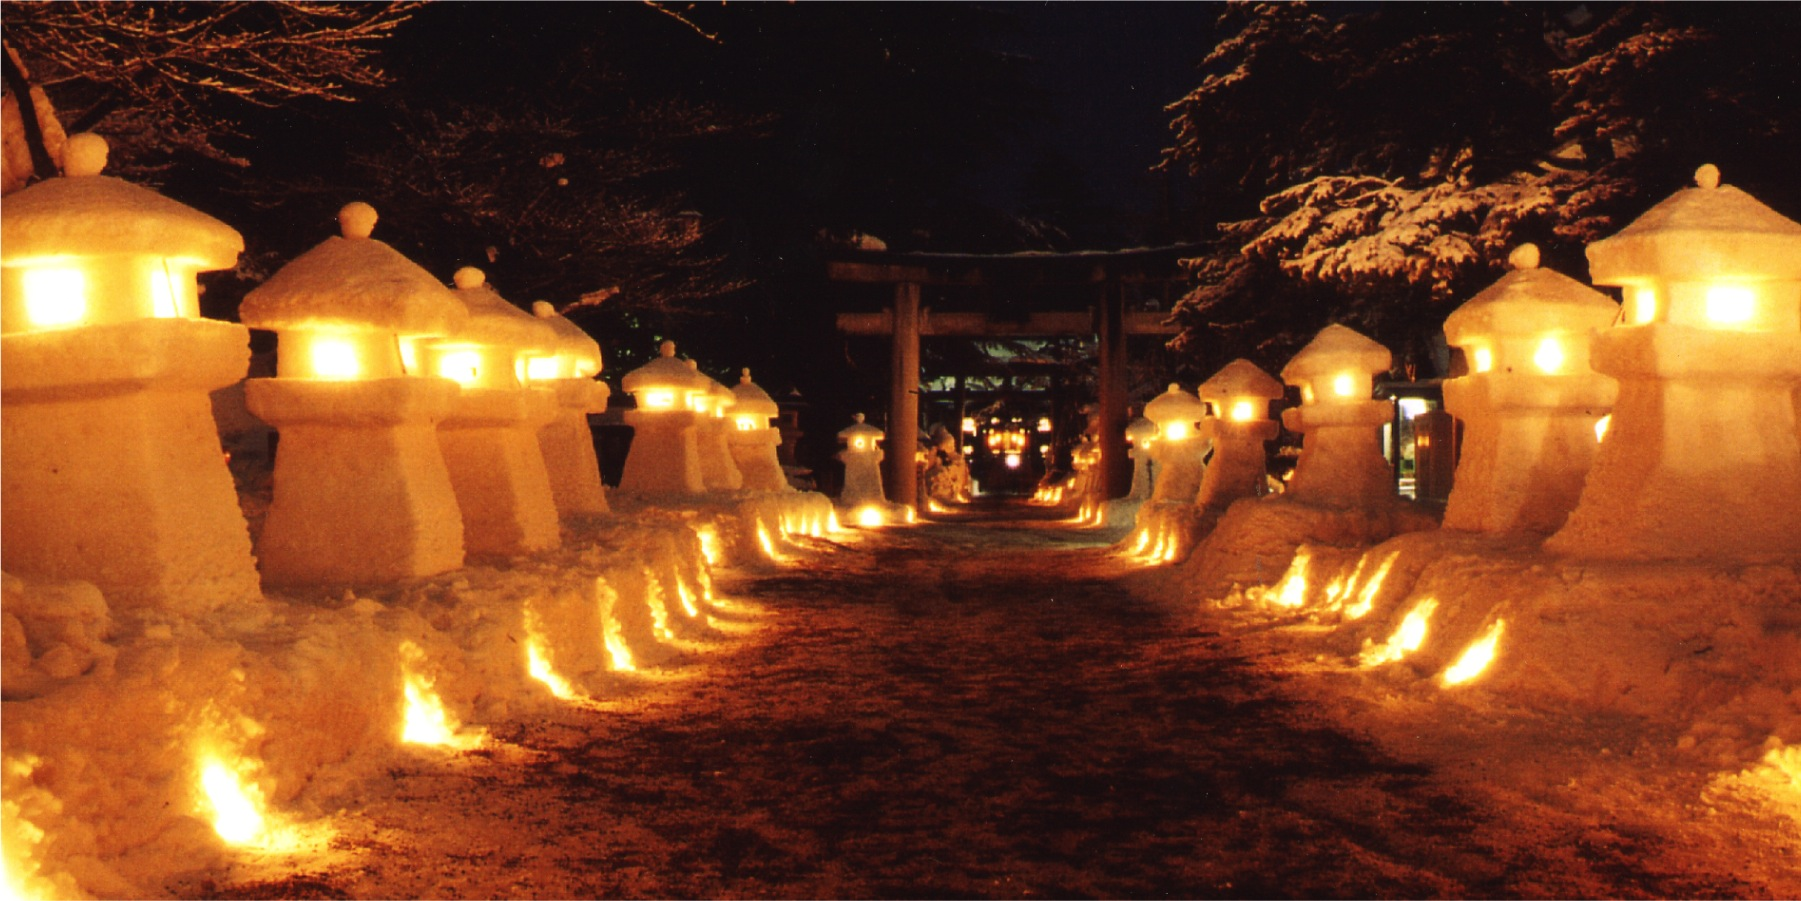 Garden lantern made of snow Festival